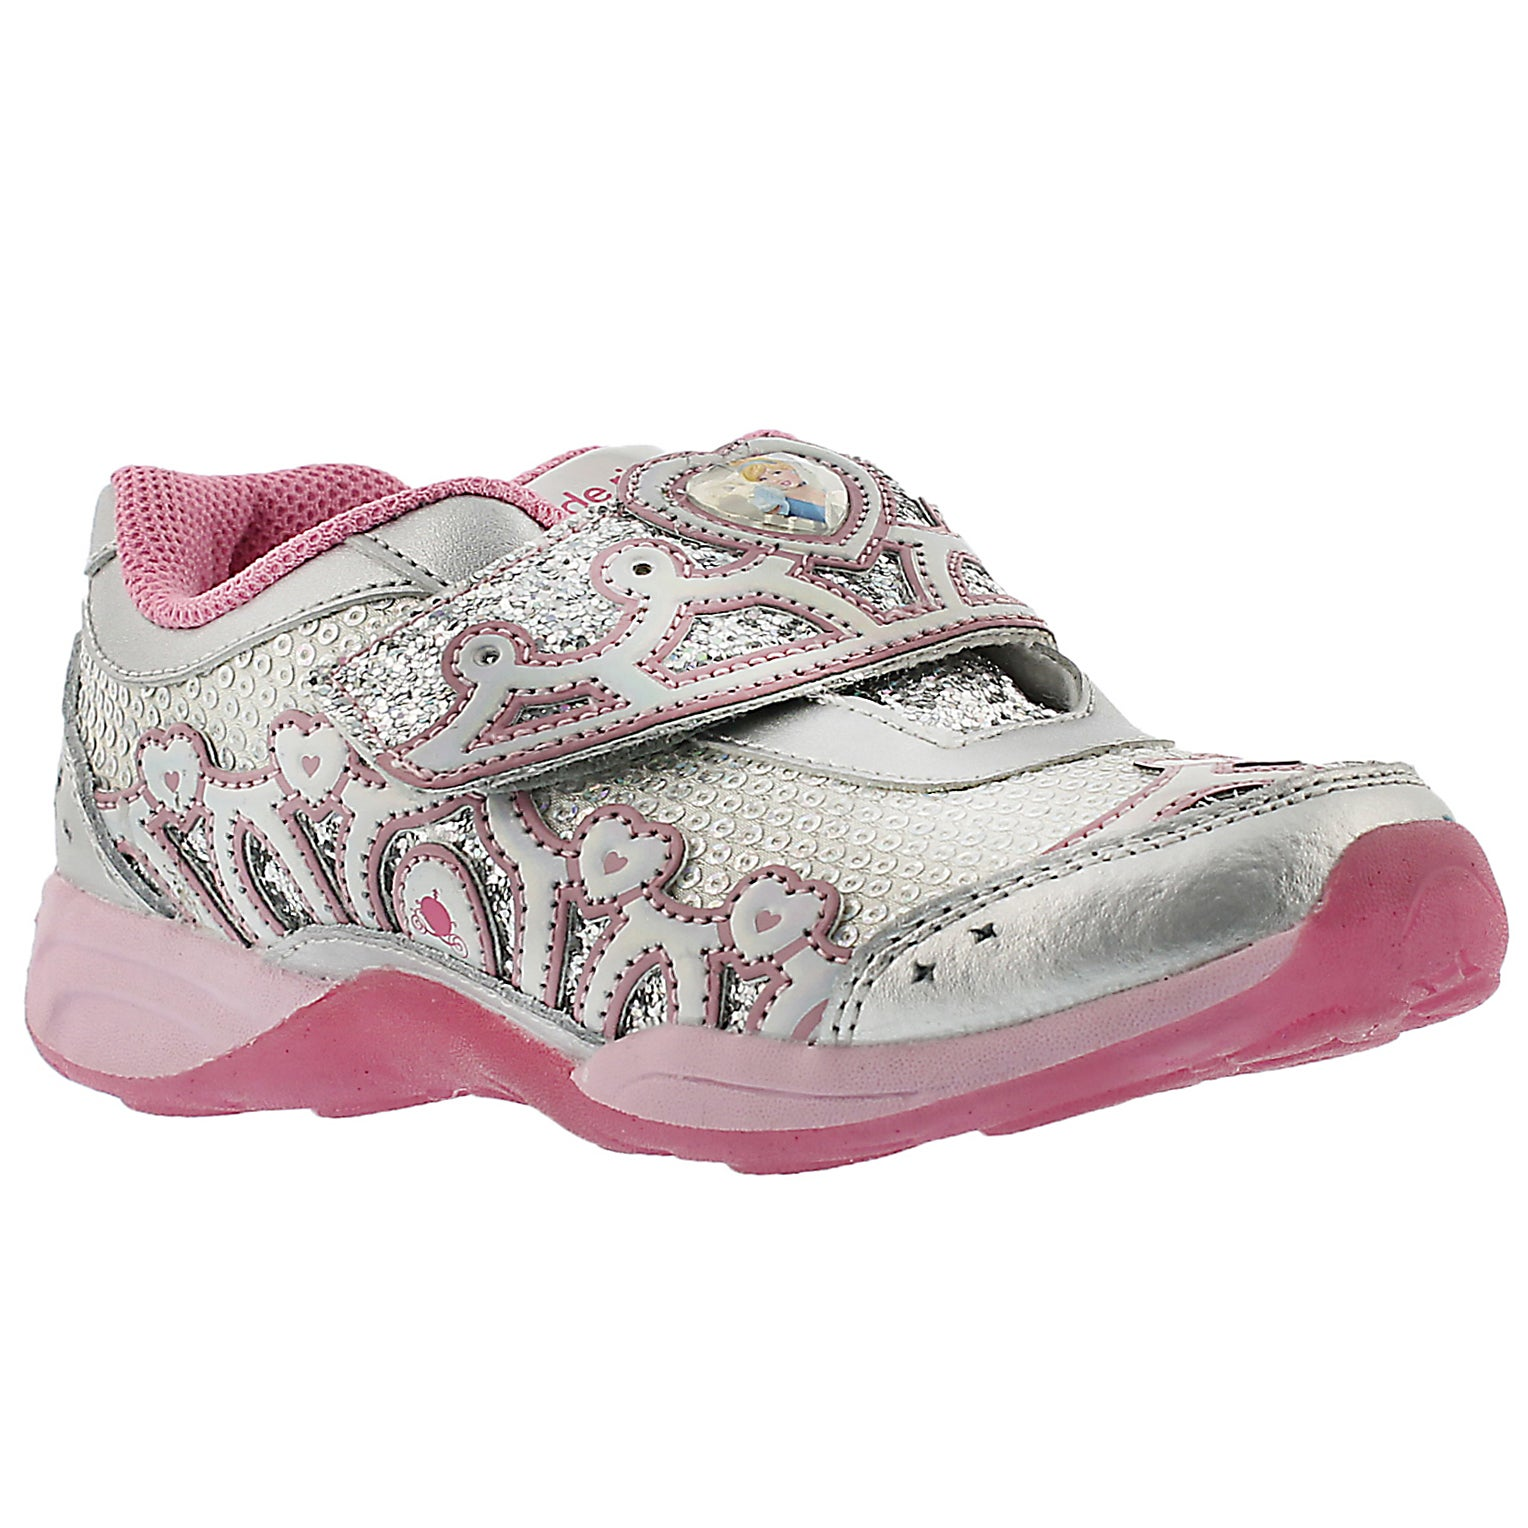 Girls' DISNEY WISH LIGHTS CINDERELLA sneakers